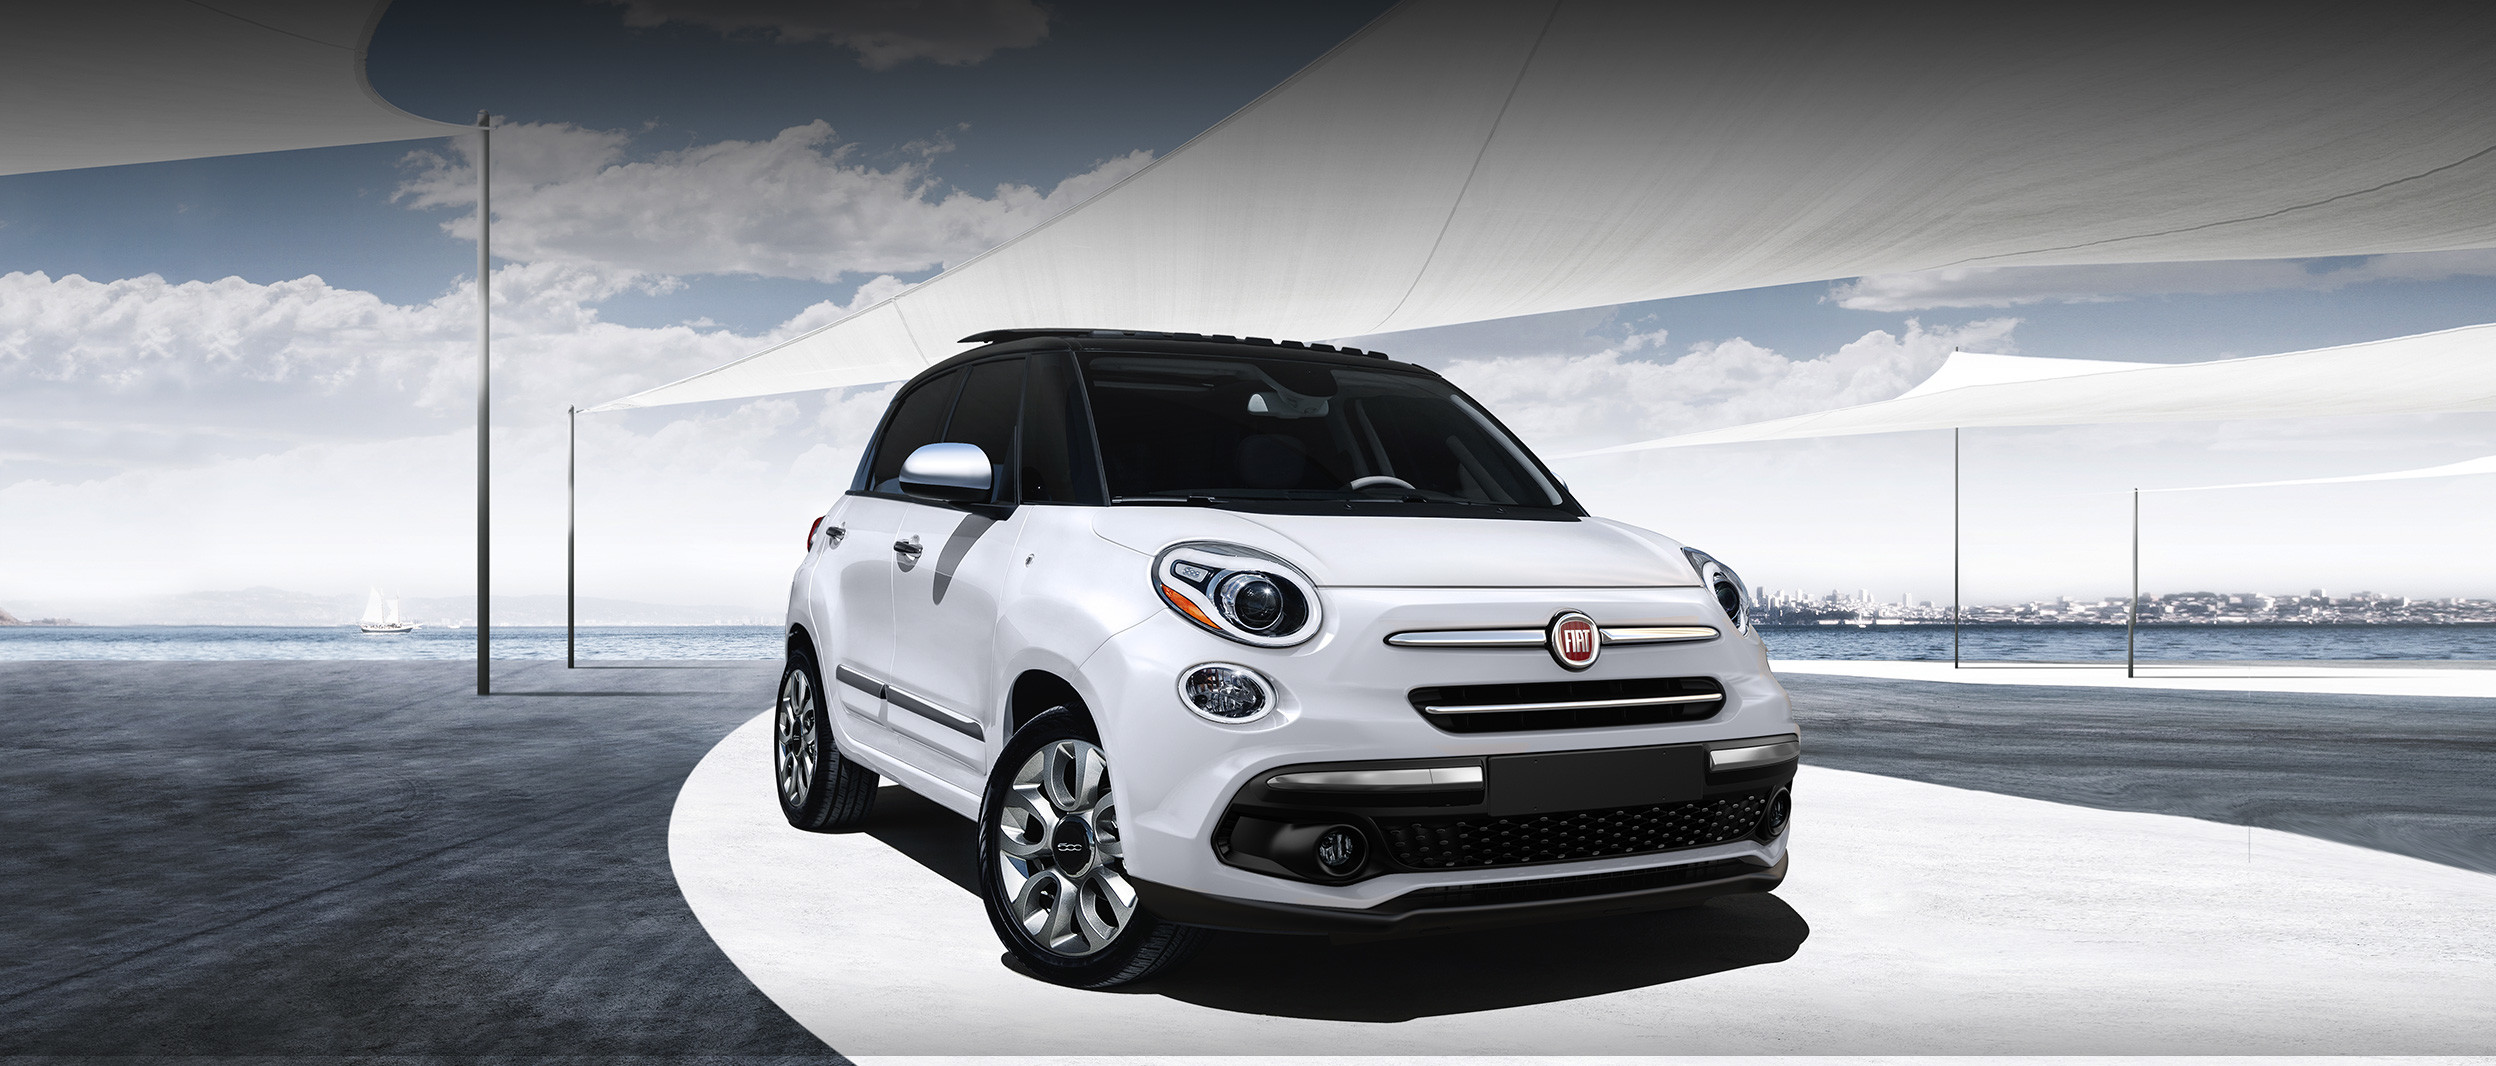 The 2020 Fiat 500L parked in an outdoor parking lot